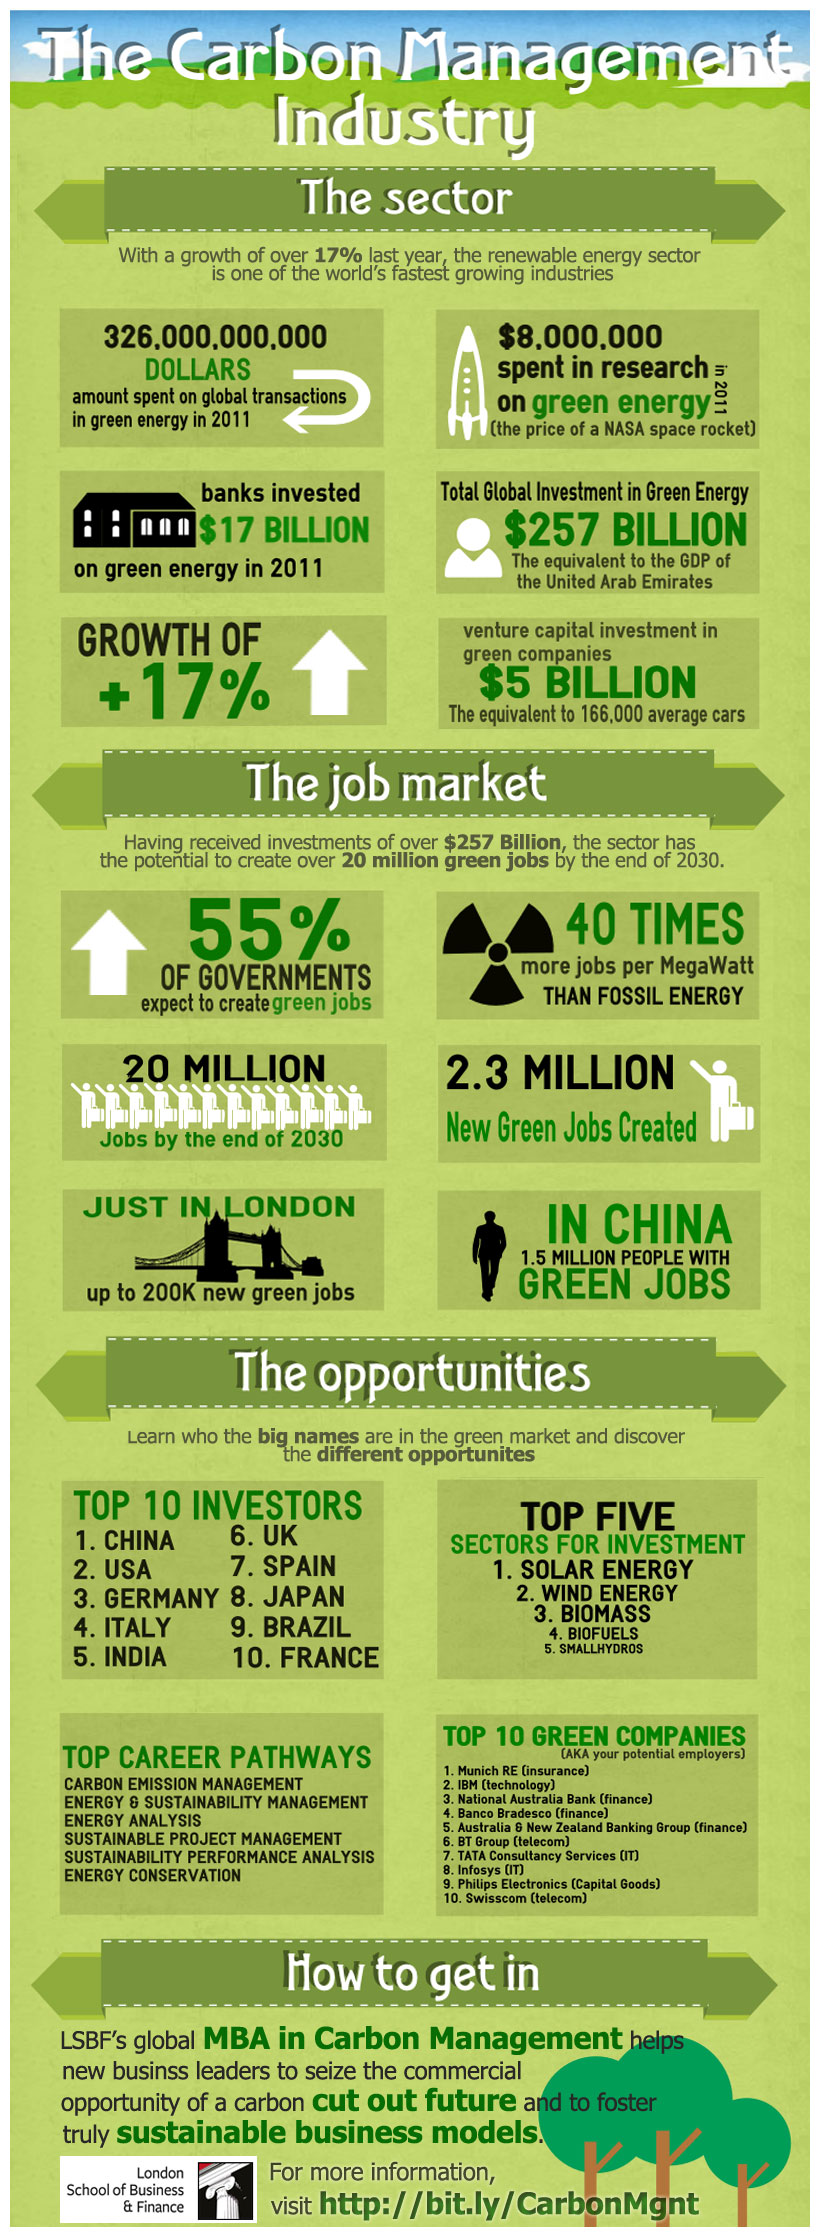 Carbon Management Industry-Infographic